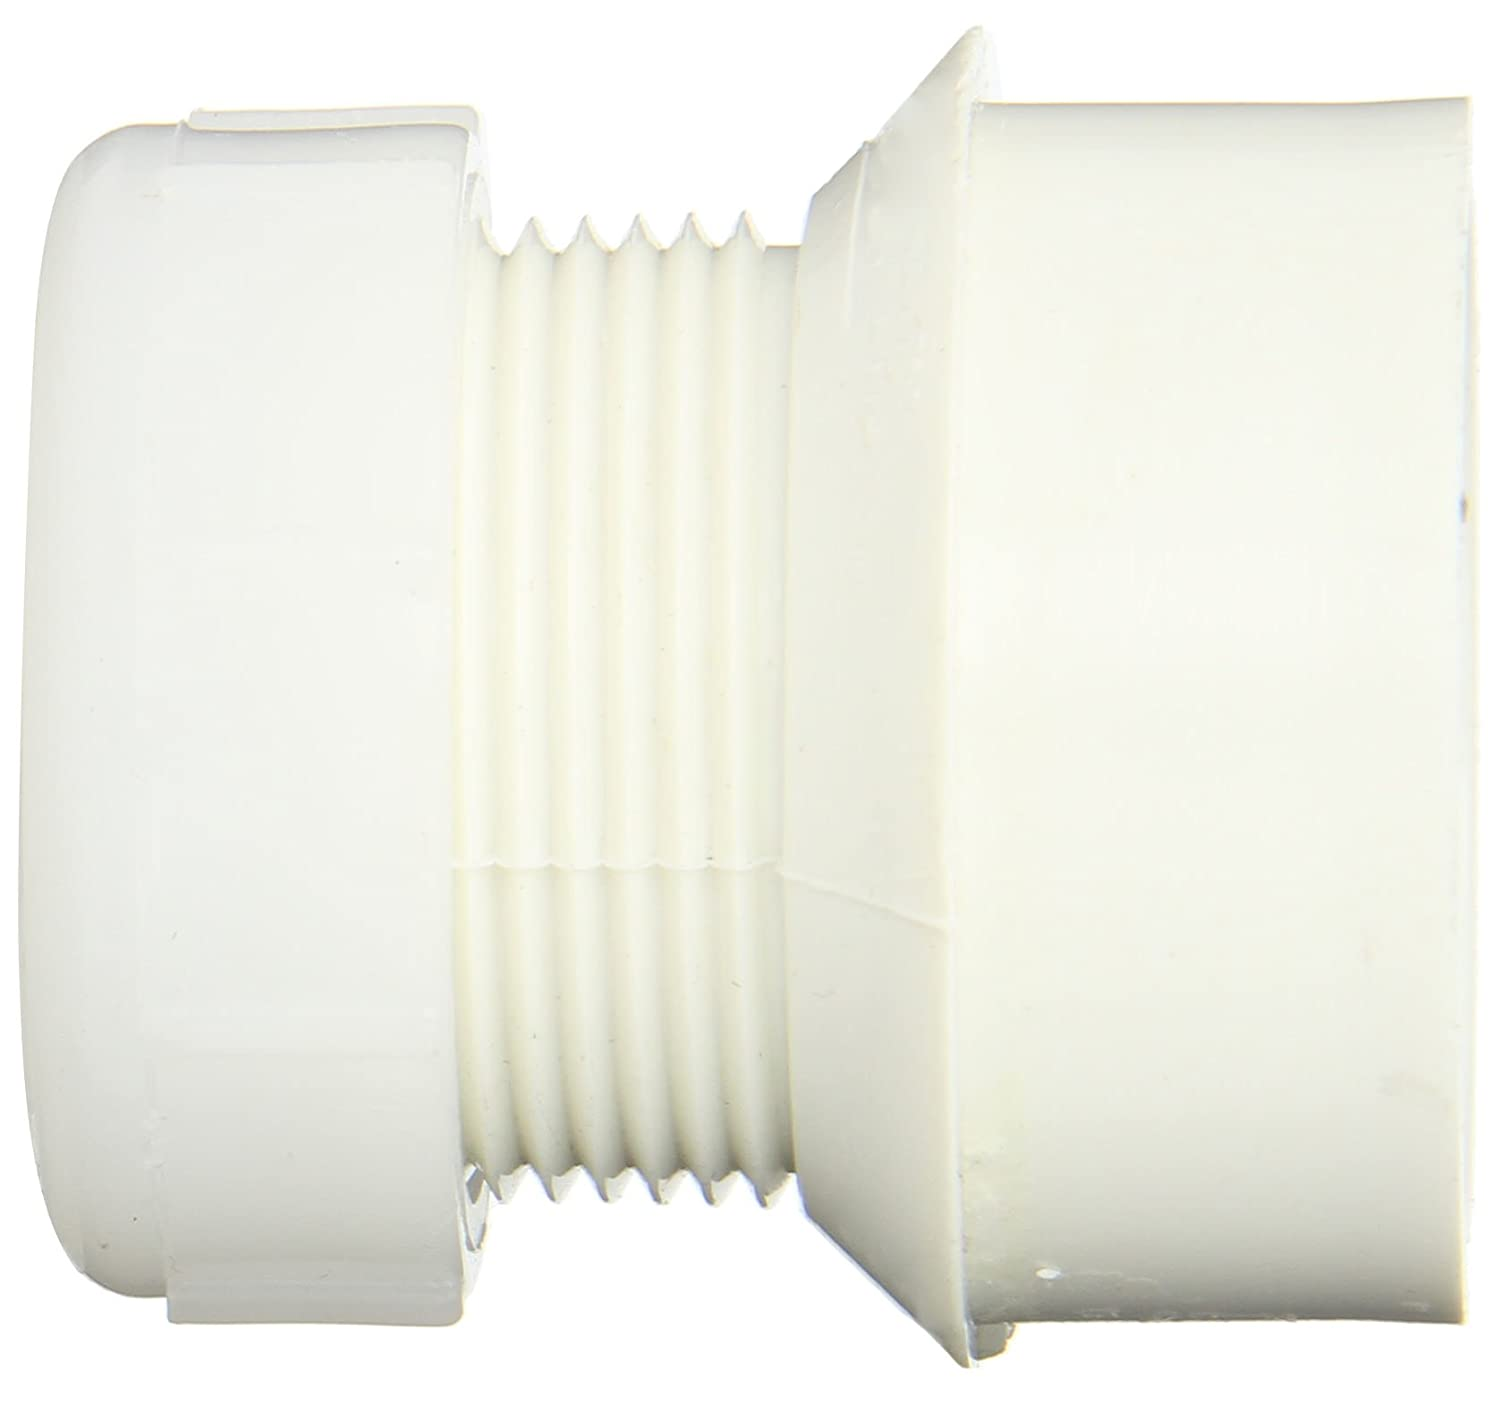 Trap Adapter with Plastic Nut 1-1//2 Hub x 1-1//2 Slip Spears P104P Series PVC DWV Pipe Fitting